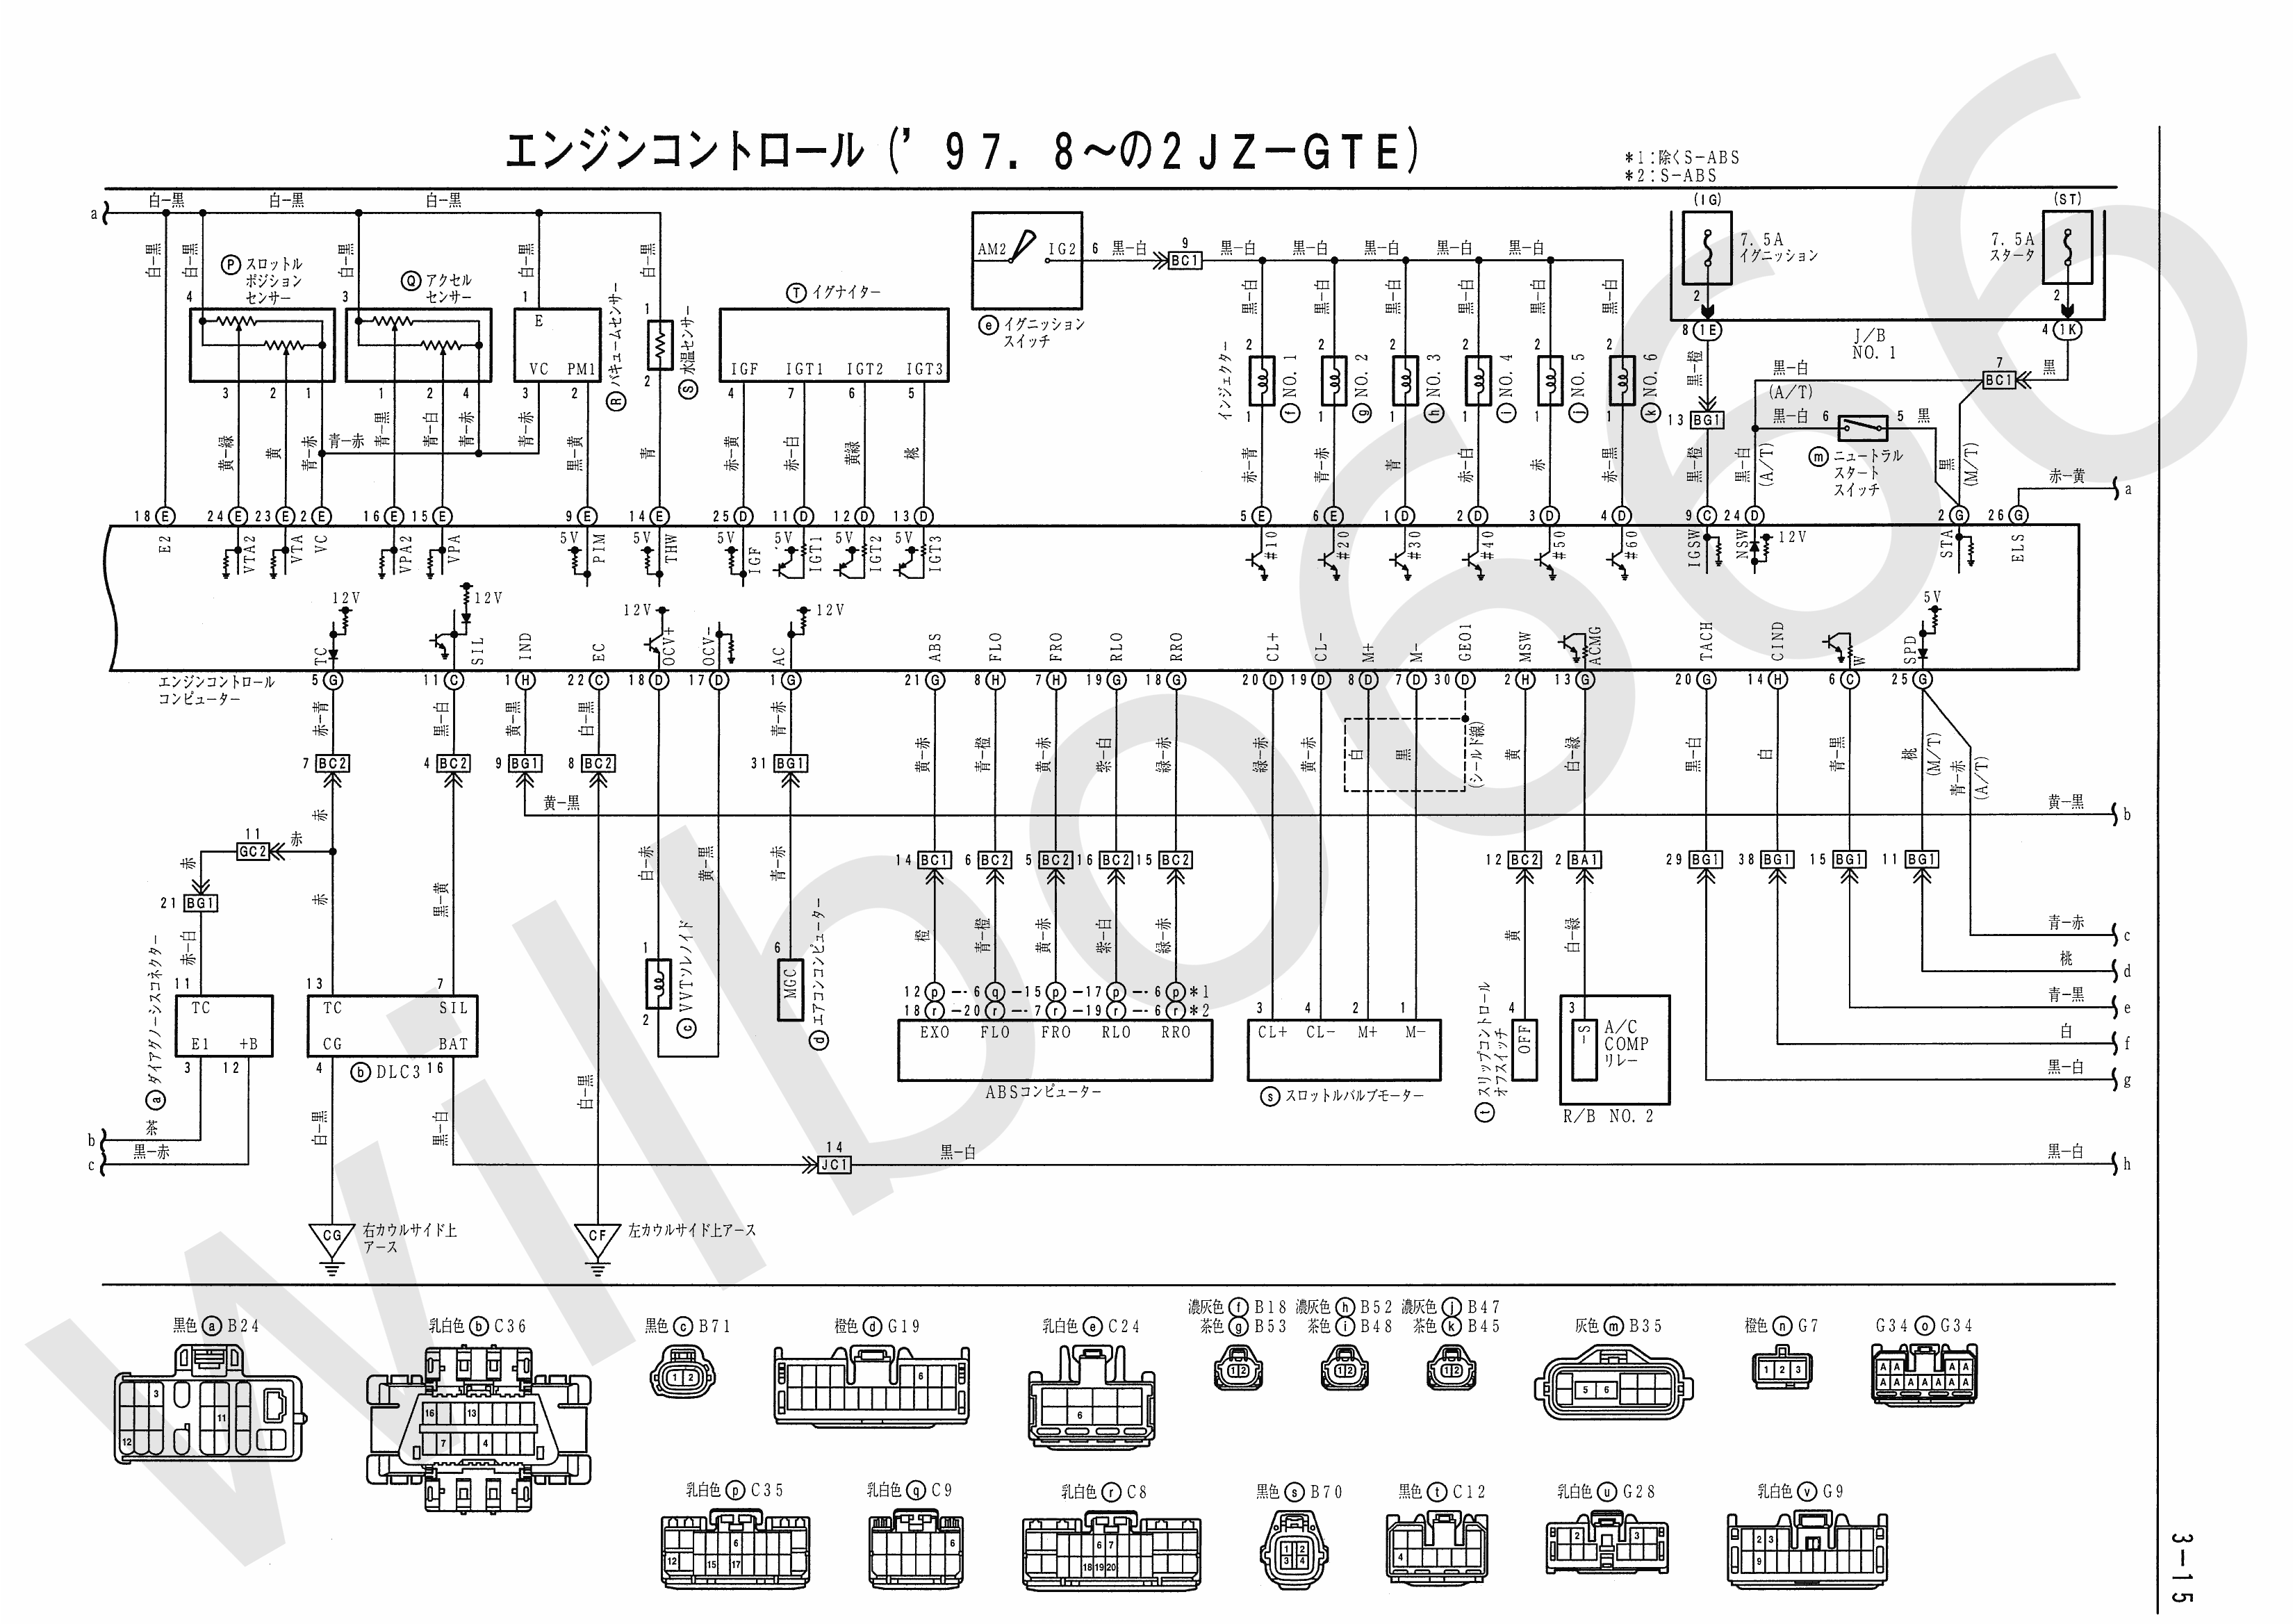 JZA80 Electrical Wiring Diagram 6742505 3 15 wilbo666 2jz gte vvti jza80 supra engine wiring 2jz wiring diagram at gsmportal.co